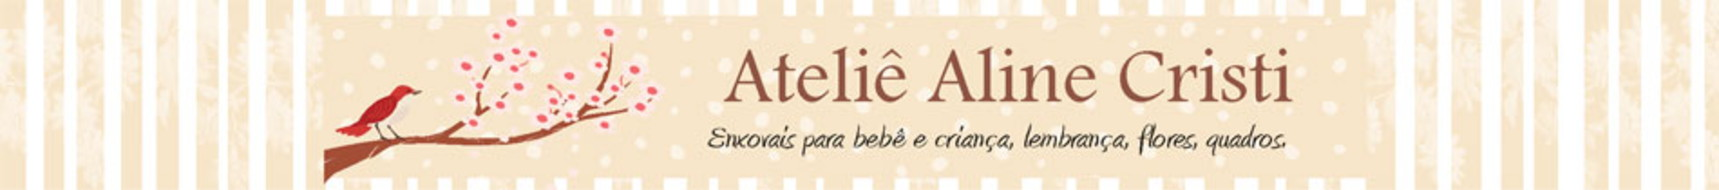 Atelie Aline Cristi